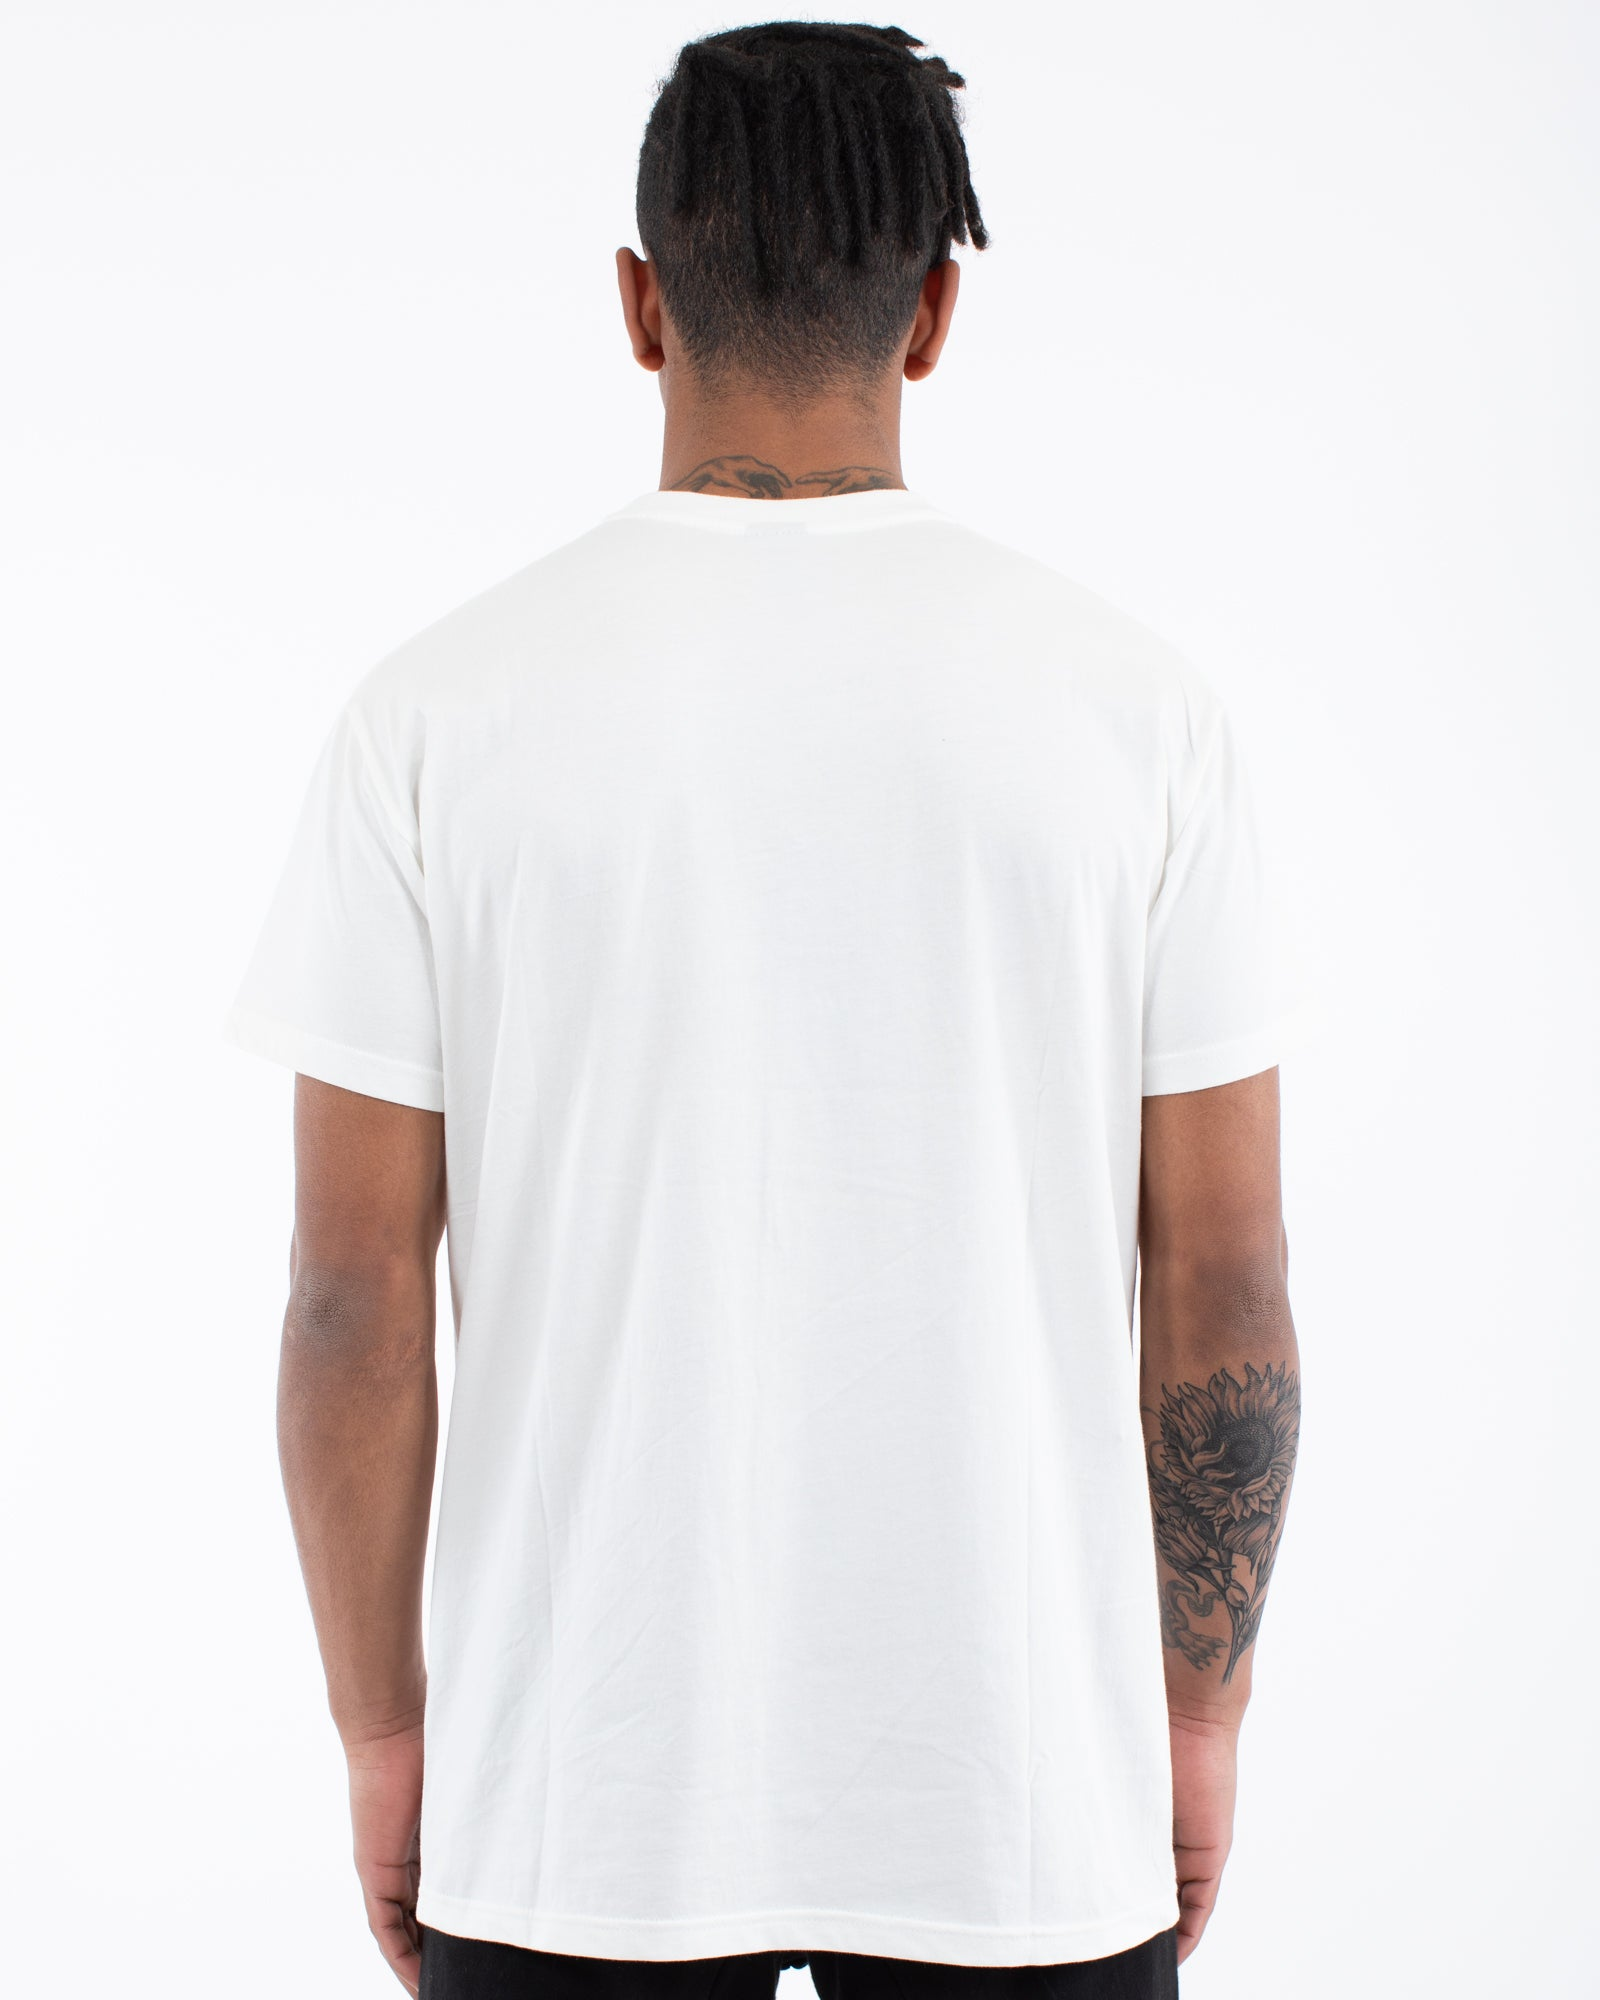 Wndrr Grease Custom Fit Tee - Off White